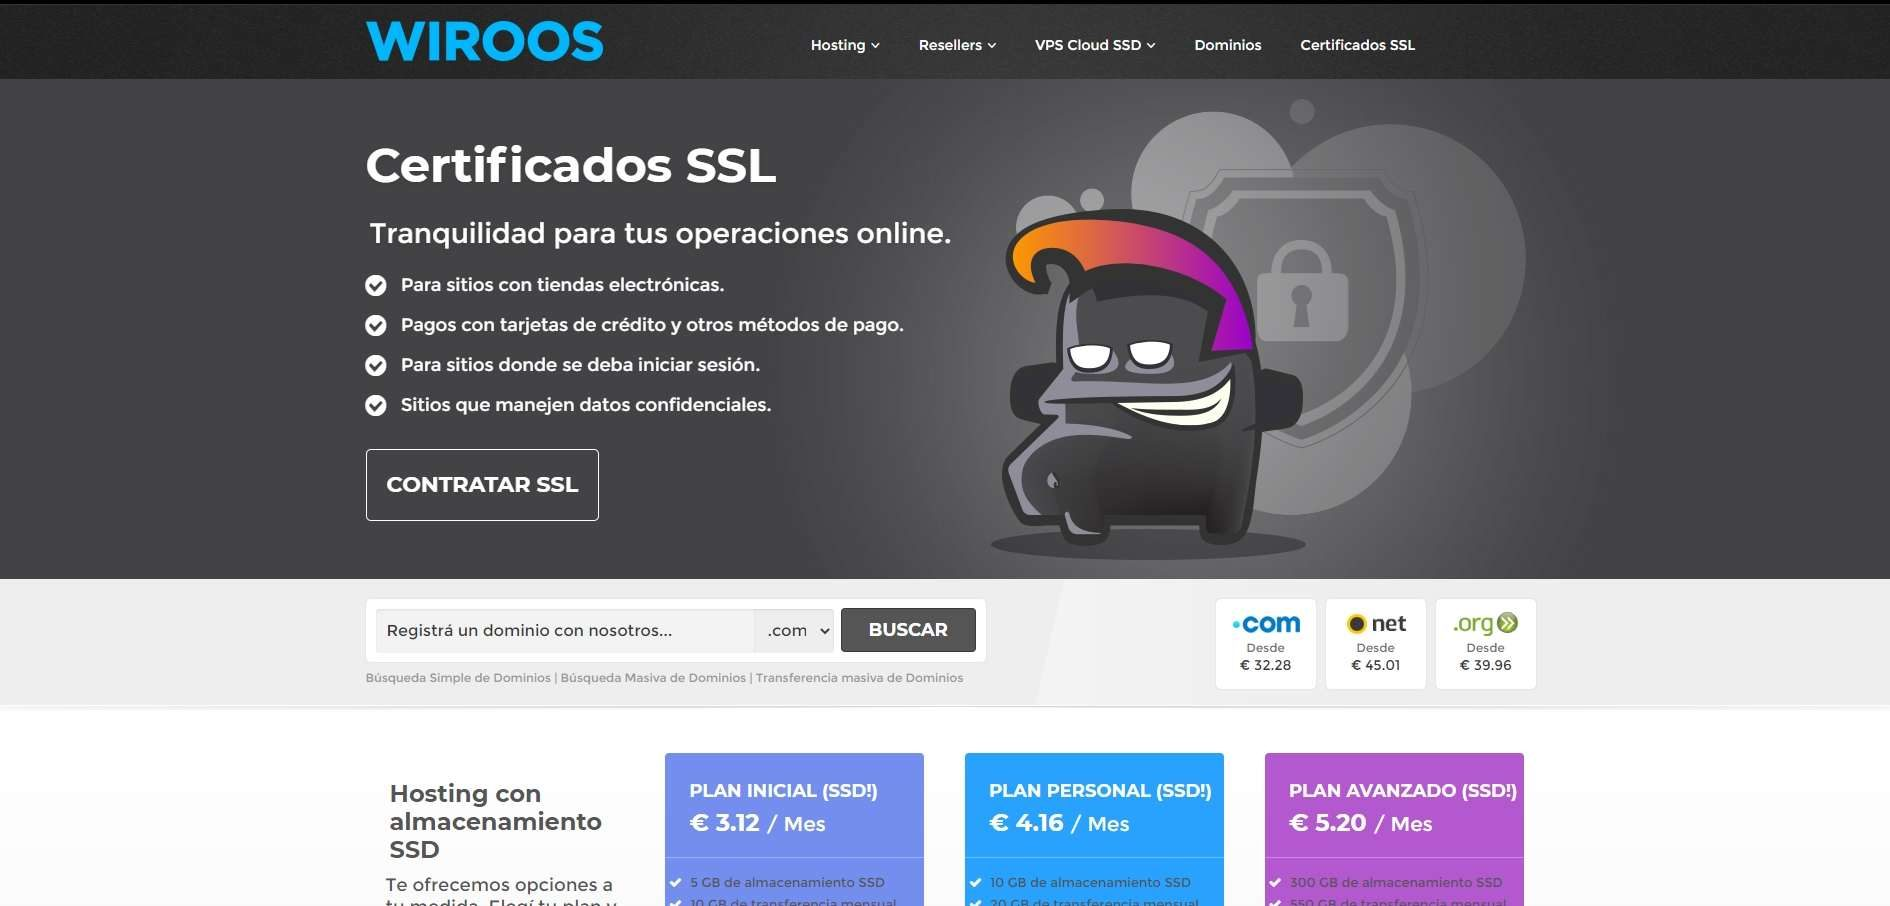 Wiroos web